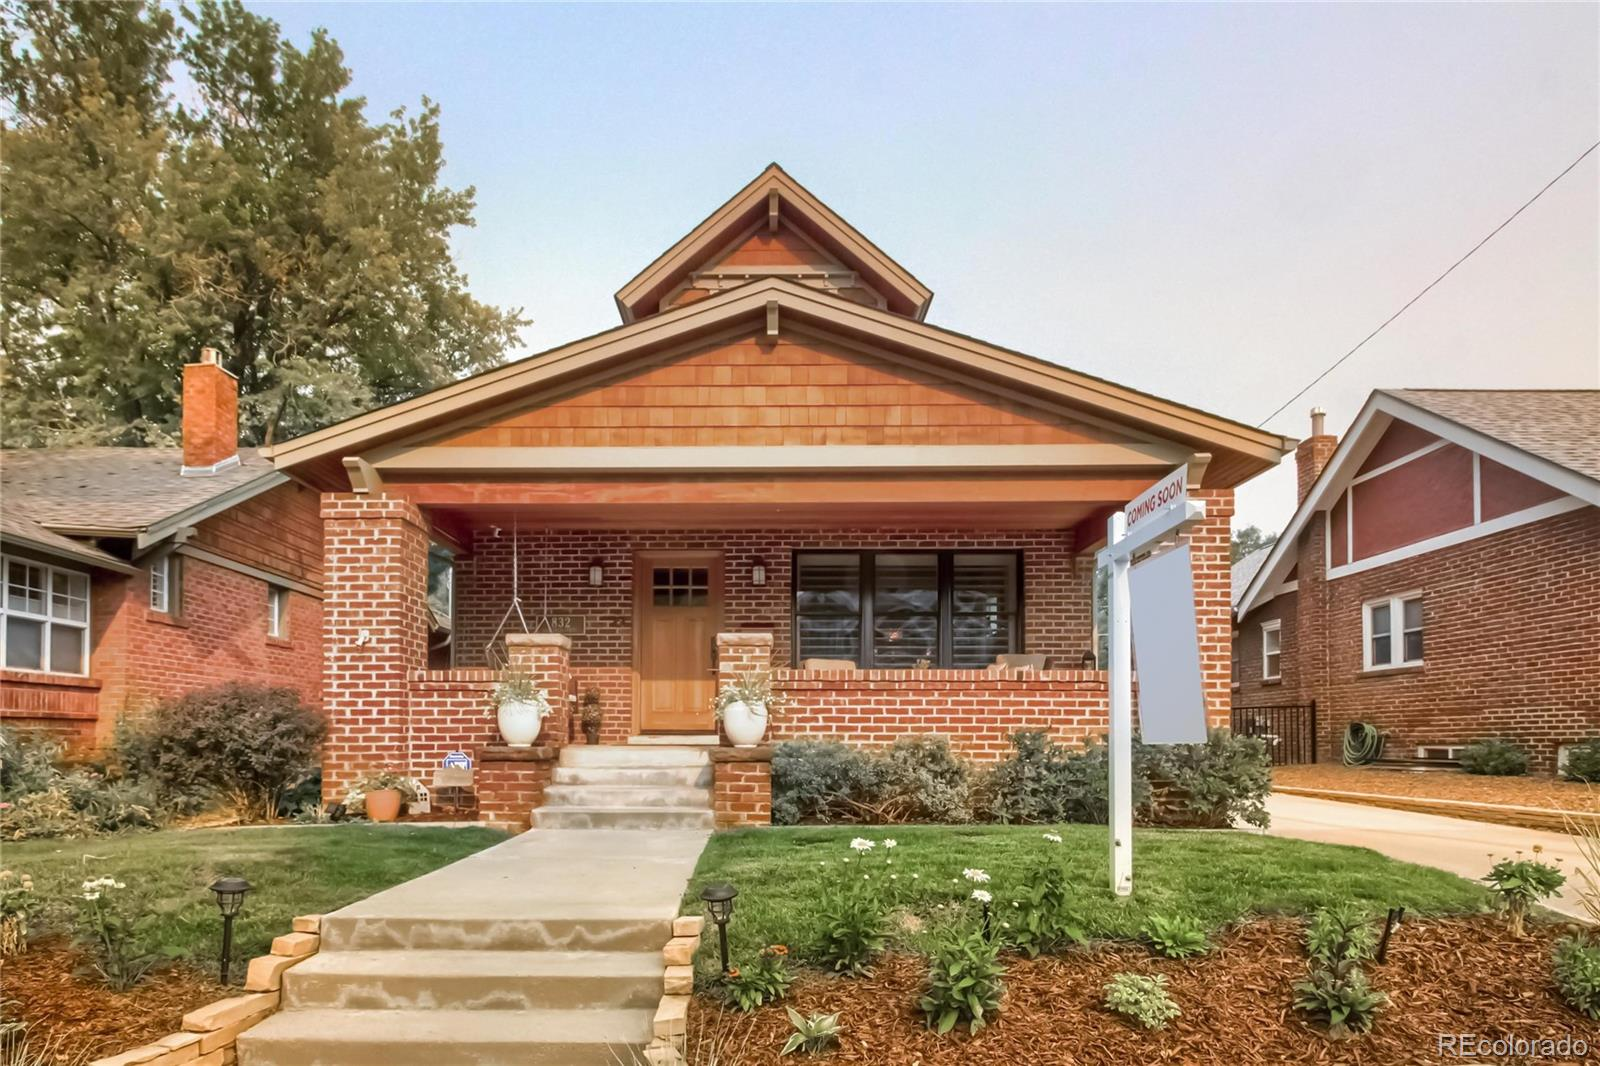 """Showings begin Saturday 9/12. Fabulous finishes and architecture in Denver's premier Congress Park neighborhood. Custom pop top bungalow and complete ground-up remodel in 2010 with top-of-the-line luxury finishes you'd expect in a multi-million dollar home: Rohl faucets, subzero fridge, GE series 6-burner commercial gas range & Asko dishwasher, chilled wine bar, ToTo toilets Pella double-pane windows, full bar in basement, sound system throughout the whole house, patio and porch, white plantation shutters (2020), porch swing and solar shade (2020), gorgeous white oak wood floors and private custom dog washing station! Work from home in a light and bright study with glass-paned french doors, and then entertain your guests at the full bar or outside on the heated and covered back patio even when the chill sets in. Sellers added a large two-car, drywalled and fully-insulated detached garage in 2017 with attic space, cabinets and work bench. Room to park additional cars on separate side driveway. Exterior stain 2017, solar landscape lighting, This home has it all, including dual HVAC systems and a radon mitigation system. If you've ever wanted to live in luxury close to everything, including Cherry Creek North, Trader Joe's and downtown, this location can't be beat. With restaurants, shops, coffee shops, wine bars and brew pubs, Congress Park is """"the"""" place to be."""